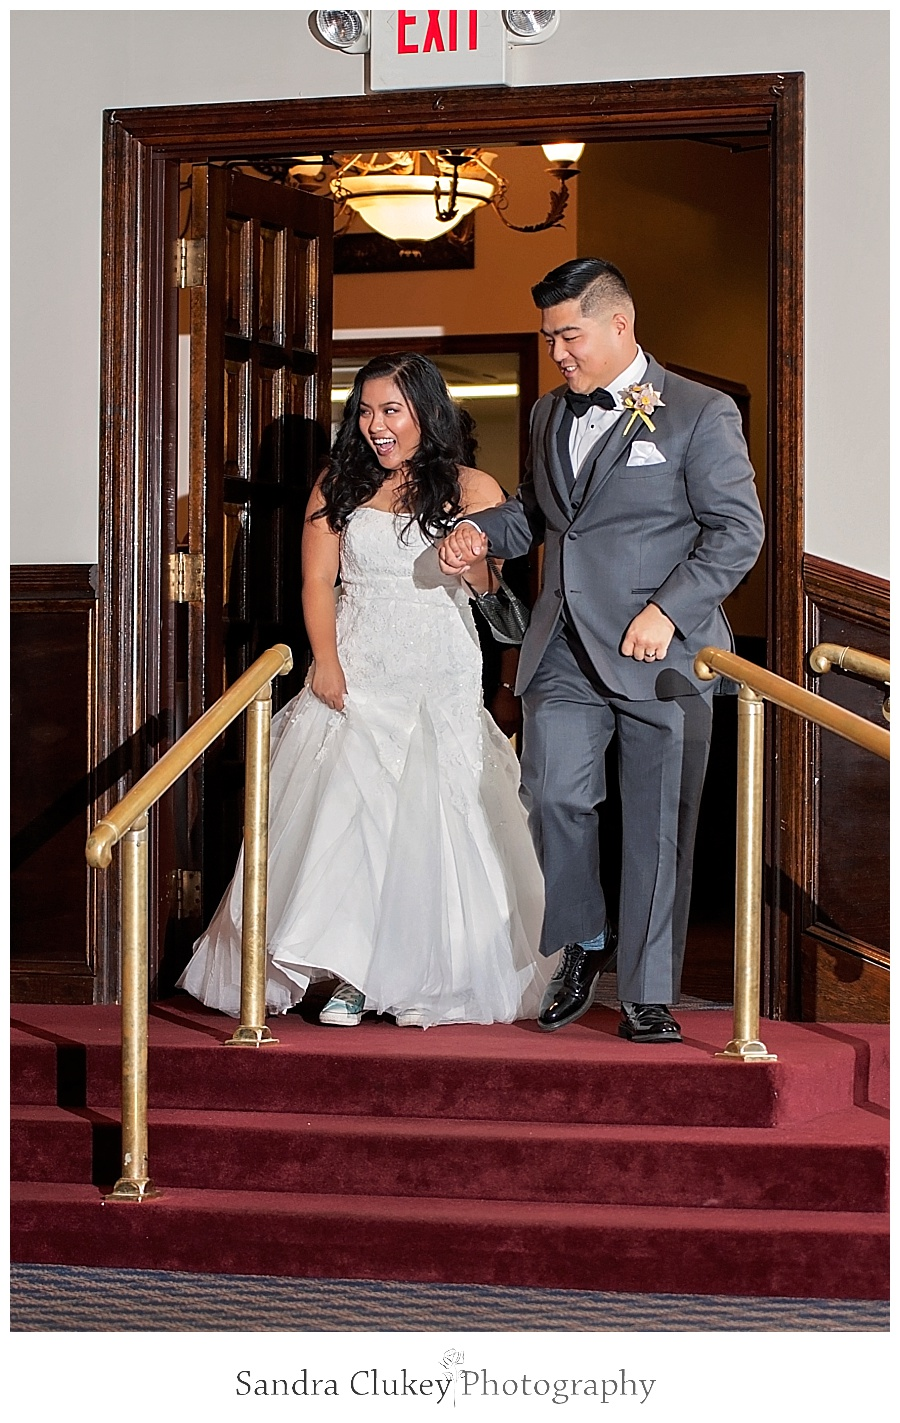 Stunning couple arrives on que